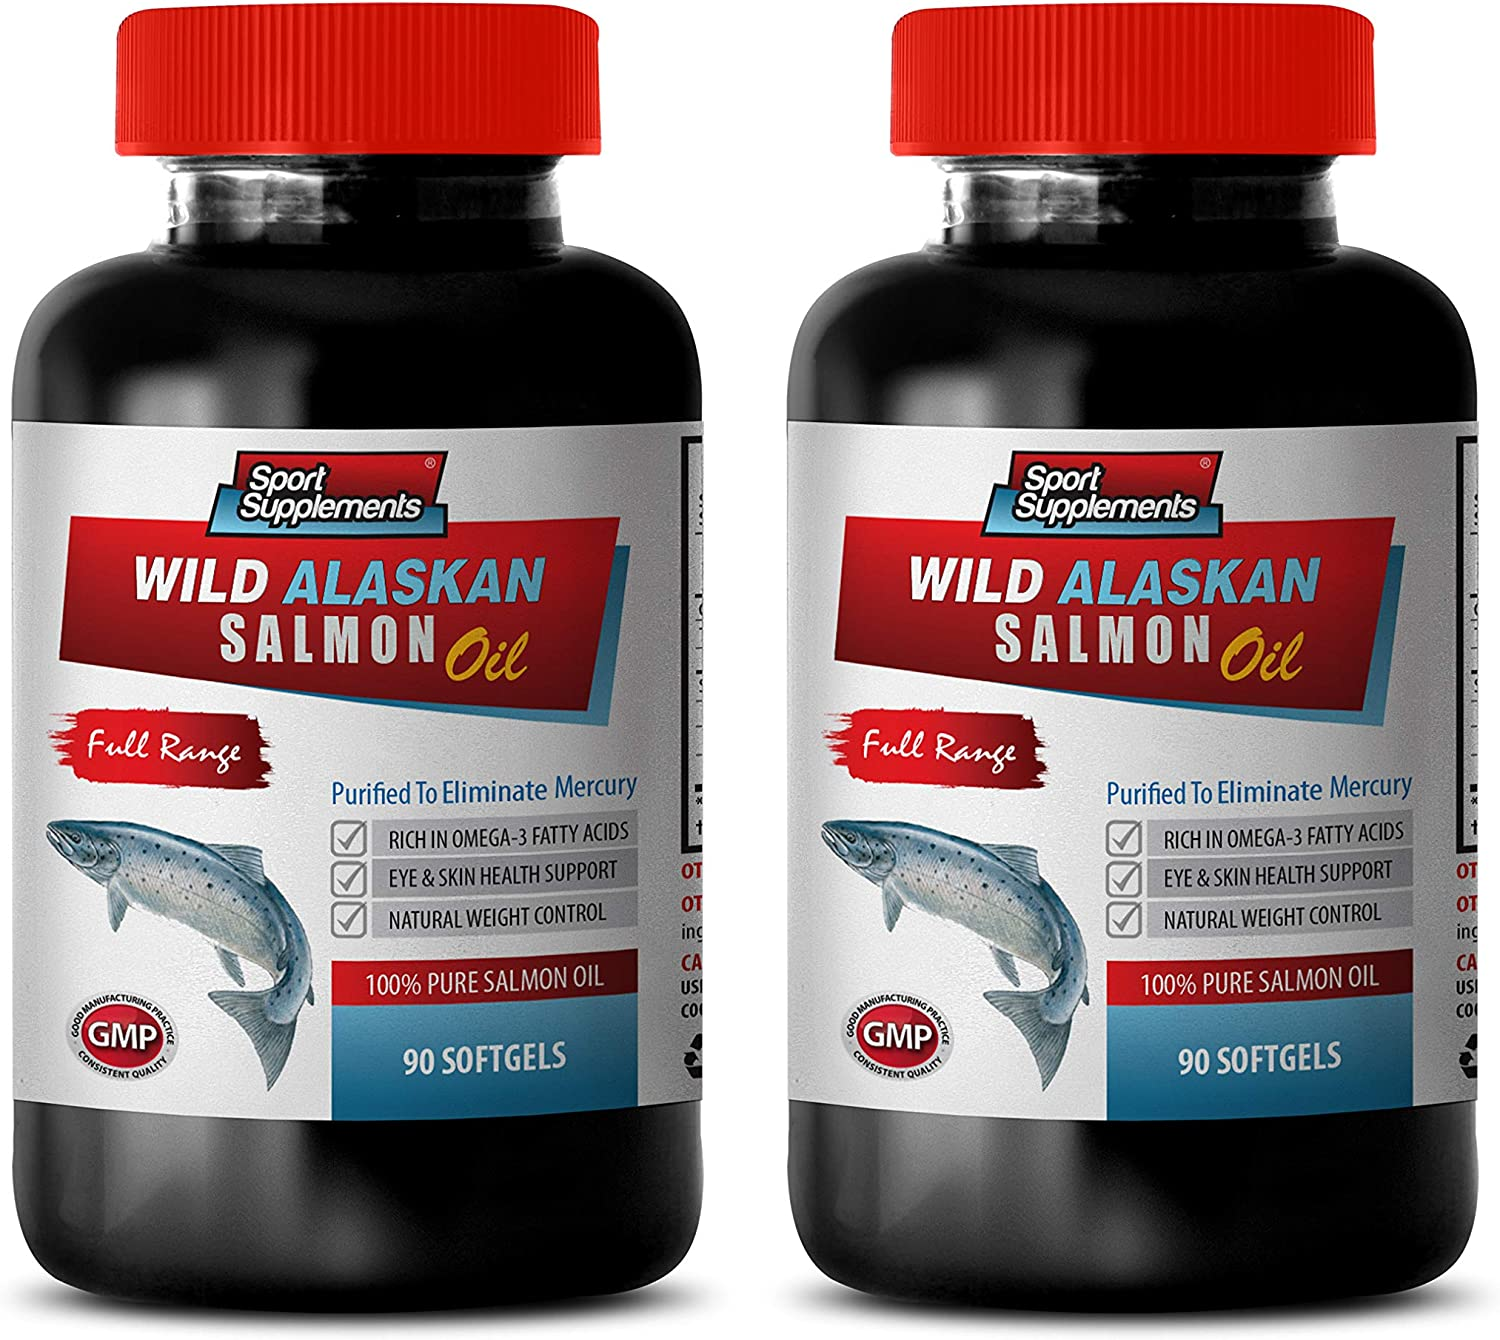 Immune System Booster Super beauty product restock quality Popular brand top - Wild Alaskan Fish Oil 100% Pure Salmon